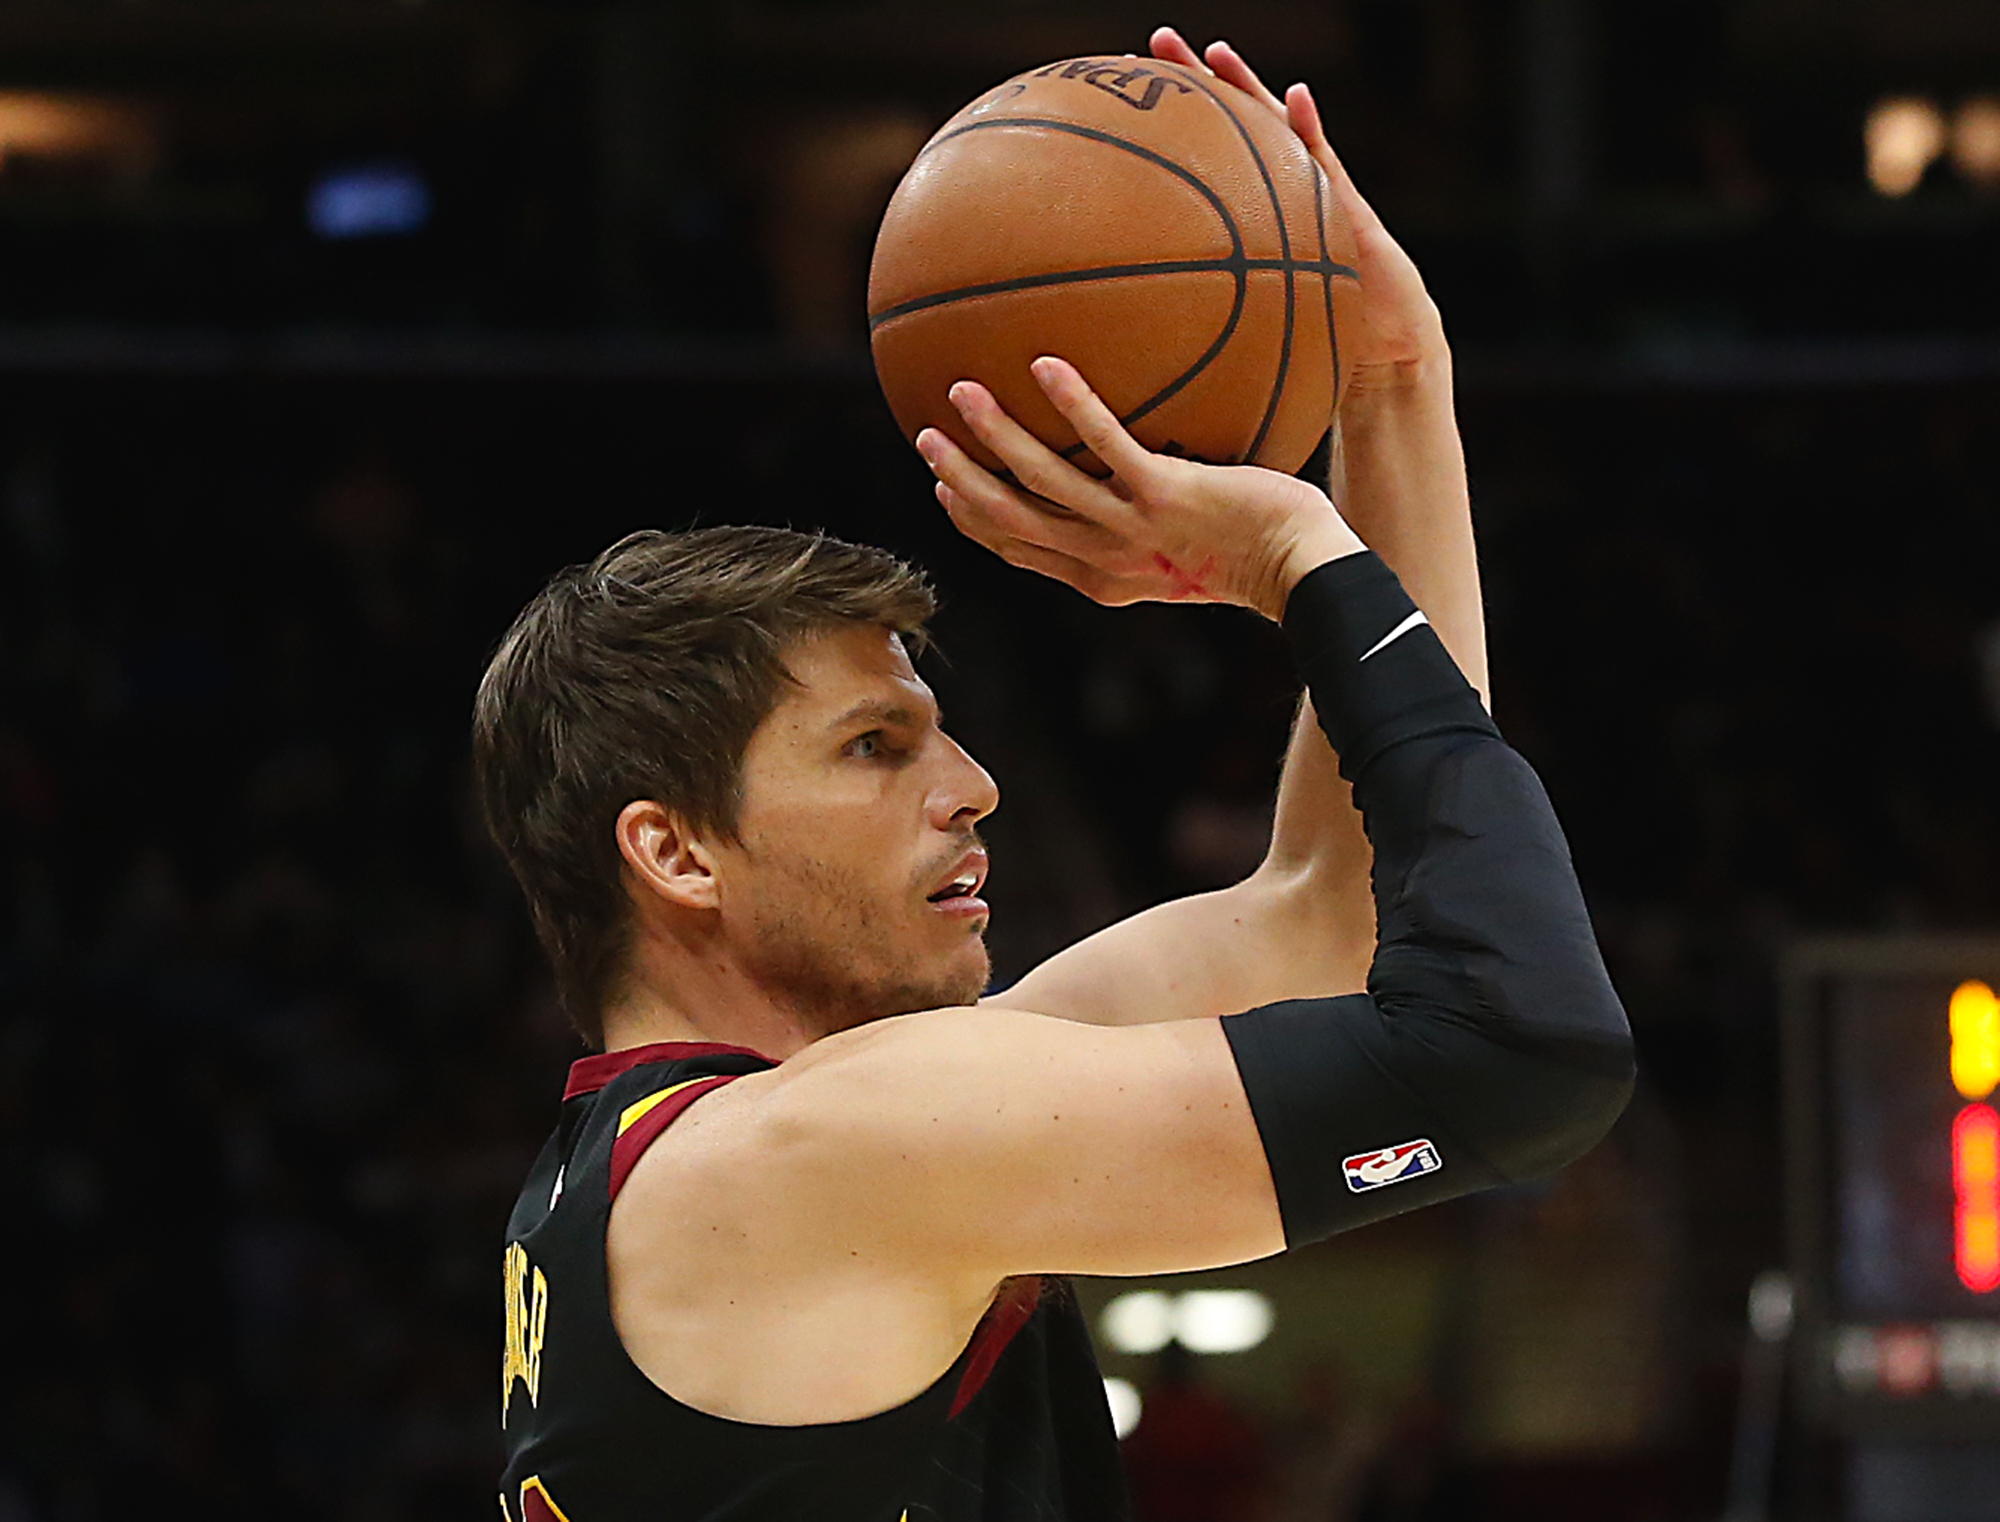 February 22, 2018 - Cleveland, OH, USA - The Cleveland Cavaliers' Kyle Korver hits a 3-pointer against the Washington Wizards in the third quarter at Quicken Loans Arena in Cleveland on Thursday, Feb. 22, 2018. The Wizards won, 110-103. (Credit Image: © Leah Klafczynski/TNS via ZUMA Wire)